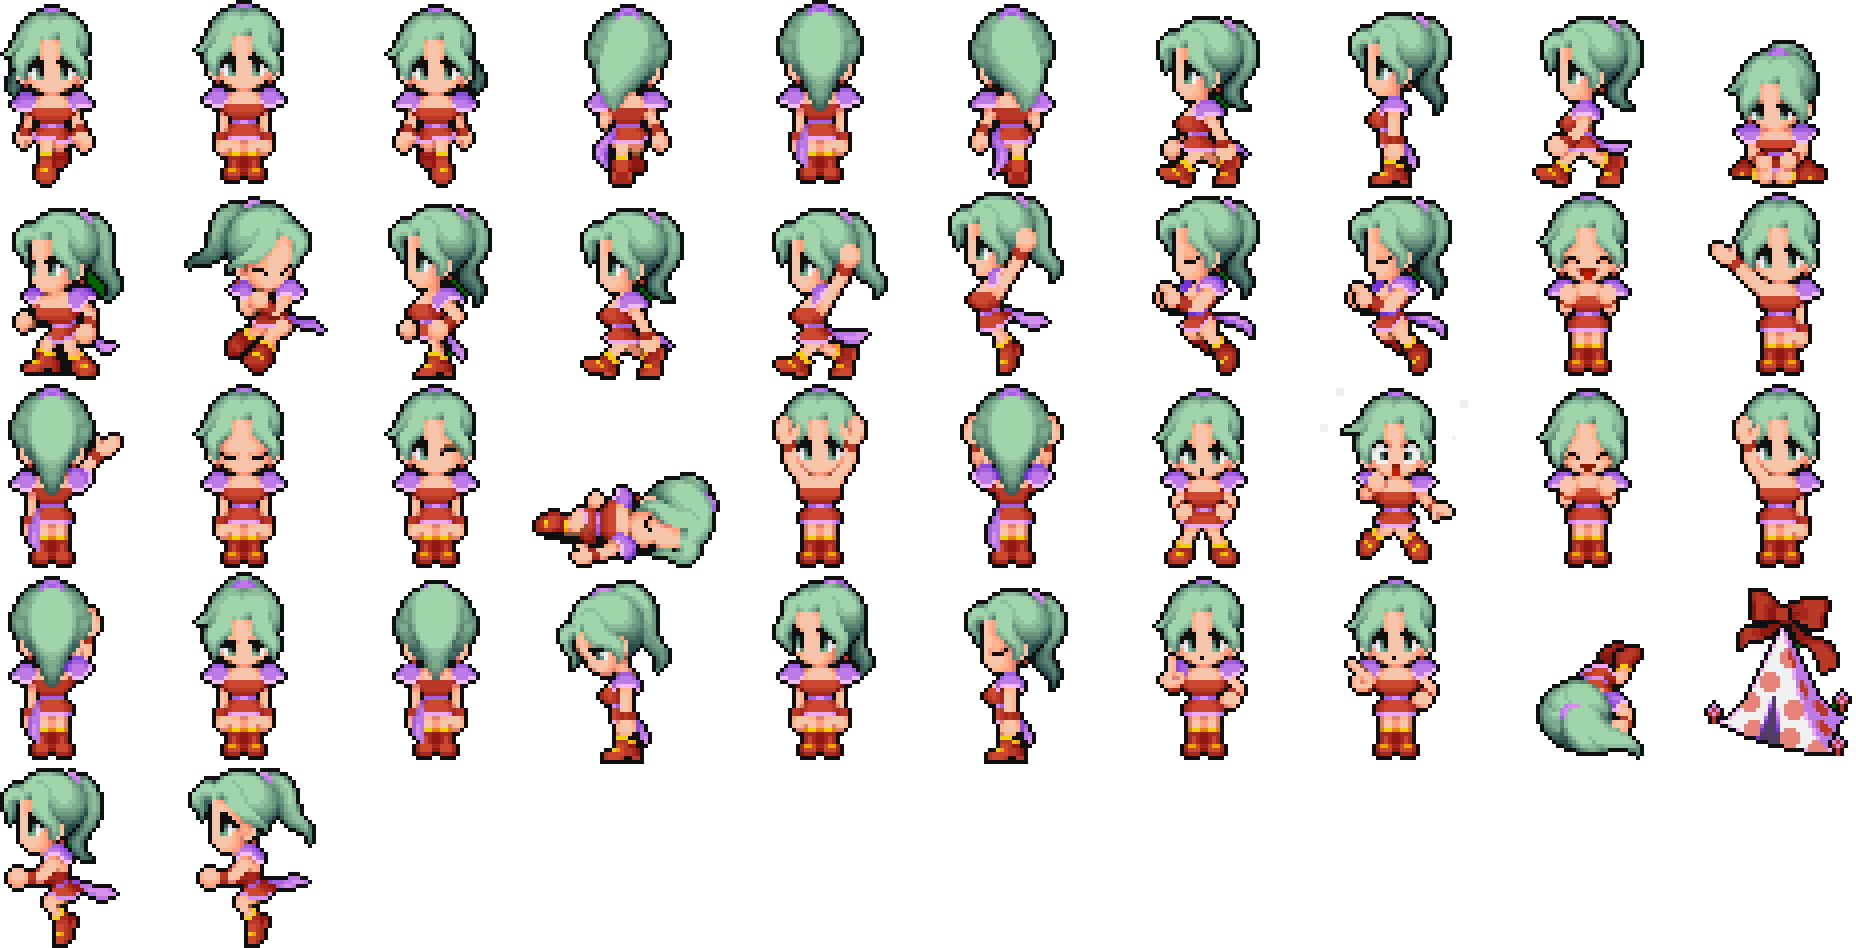 Sprite Character Transparent & PNG Clipart Free Download - YA-webdesign